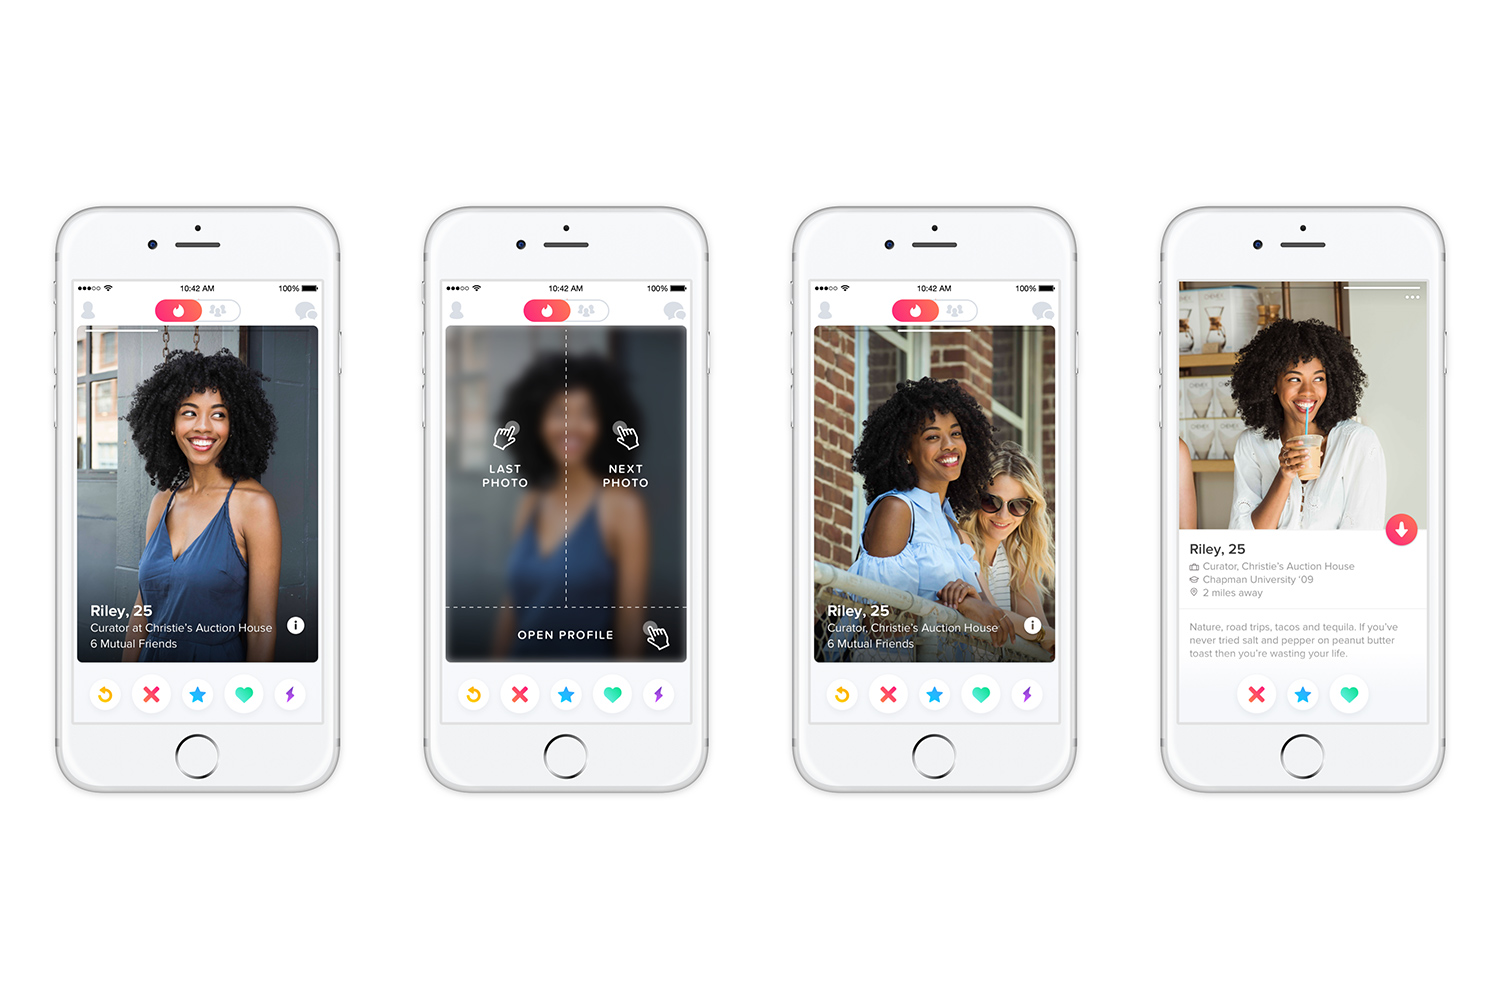 You can now swipe left and right on the newly redesigned